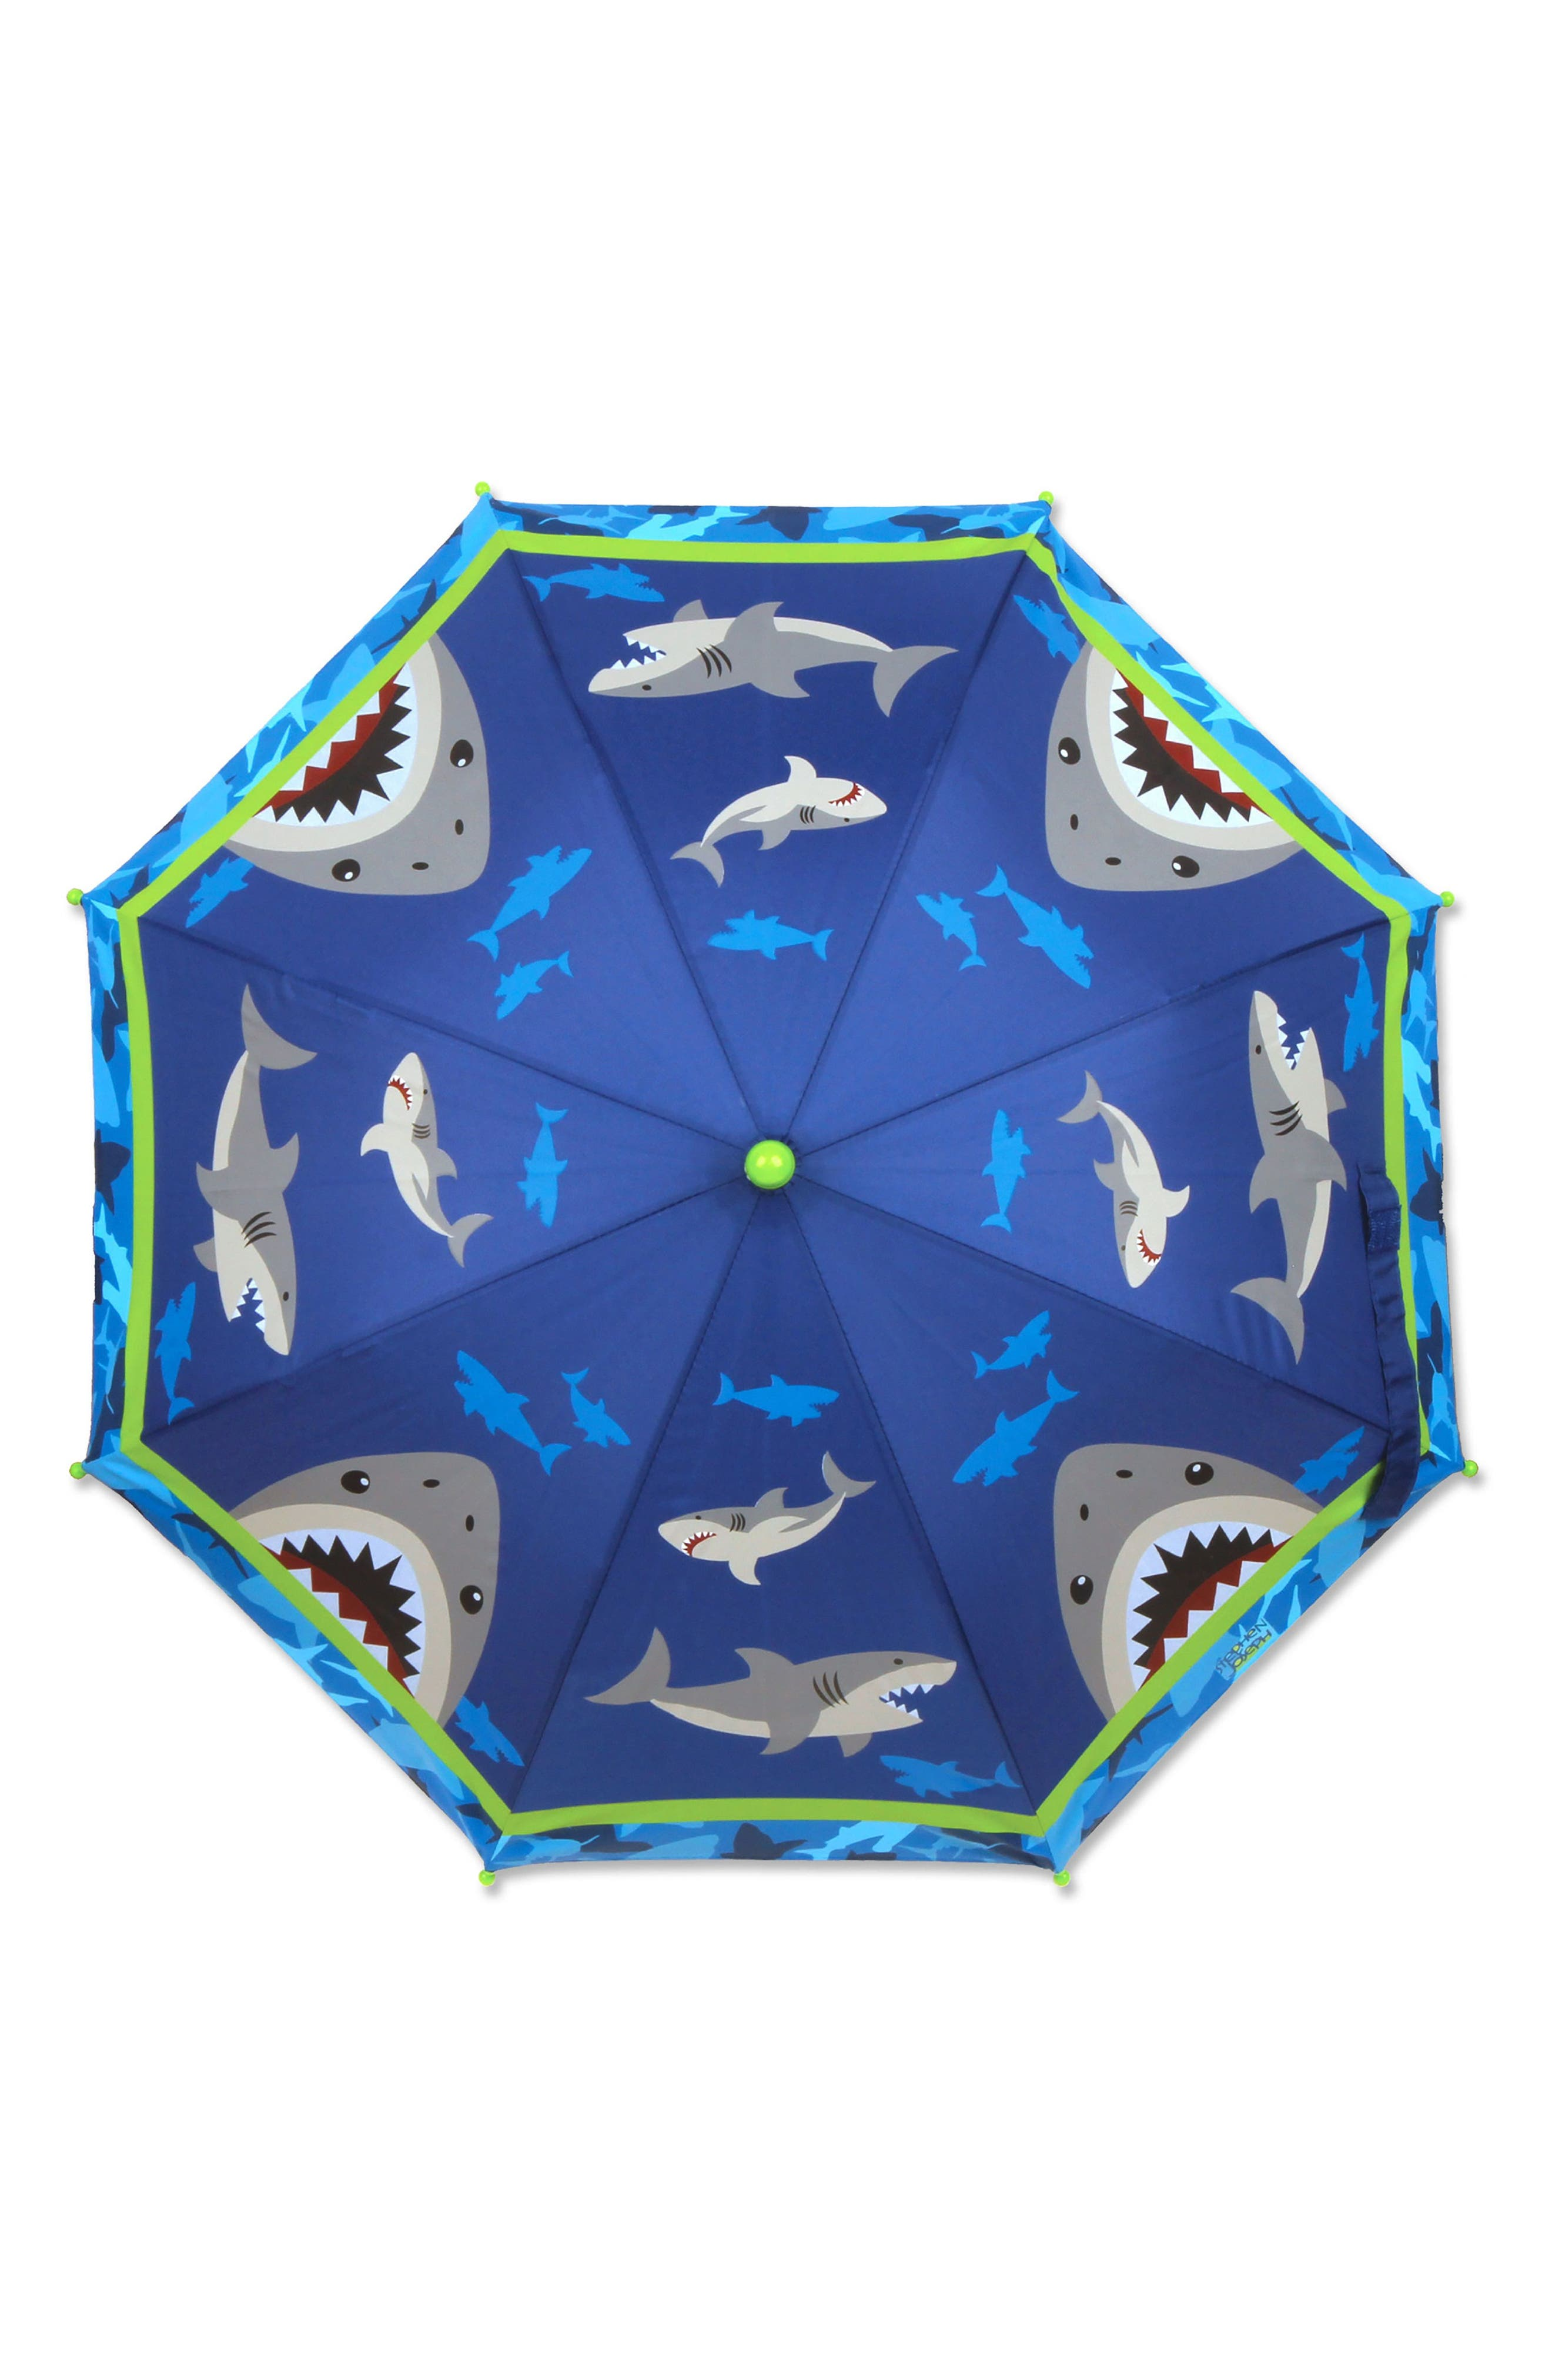 Shark Raincoat & Umbrella Set,                             Alternate thumbnail 5, color,                             Shark